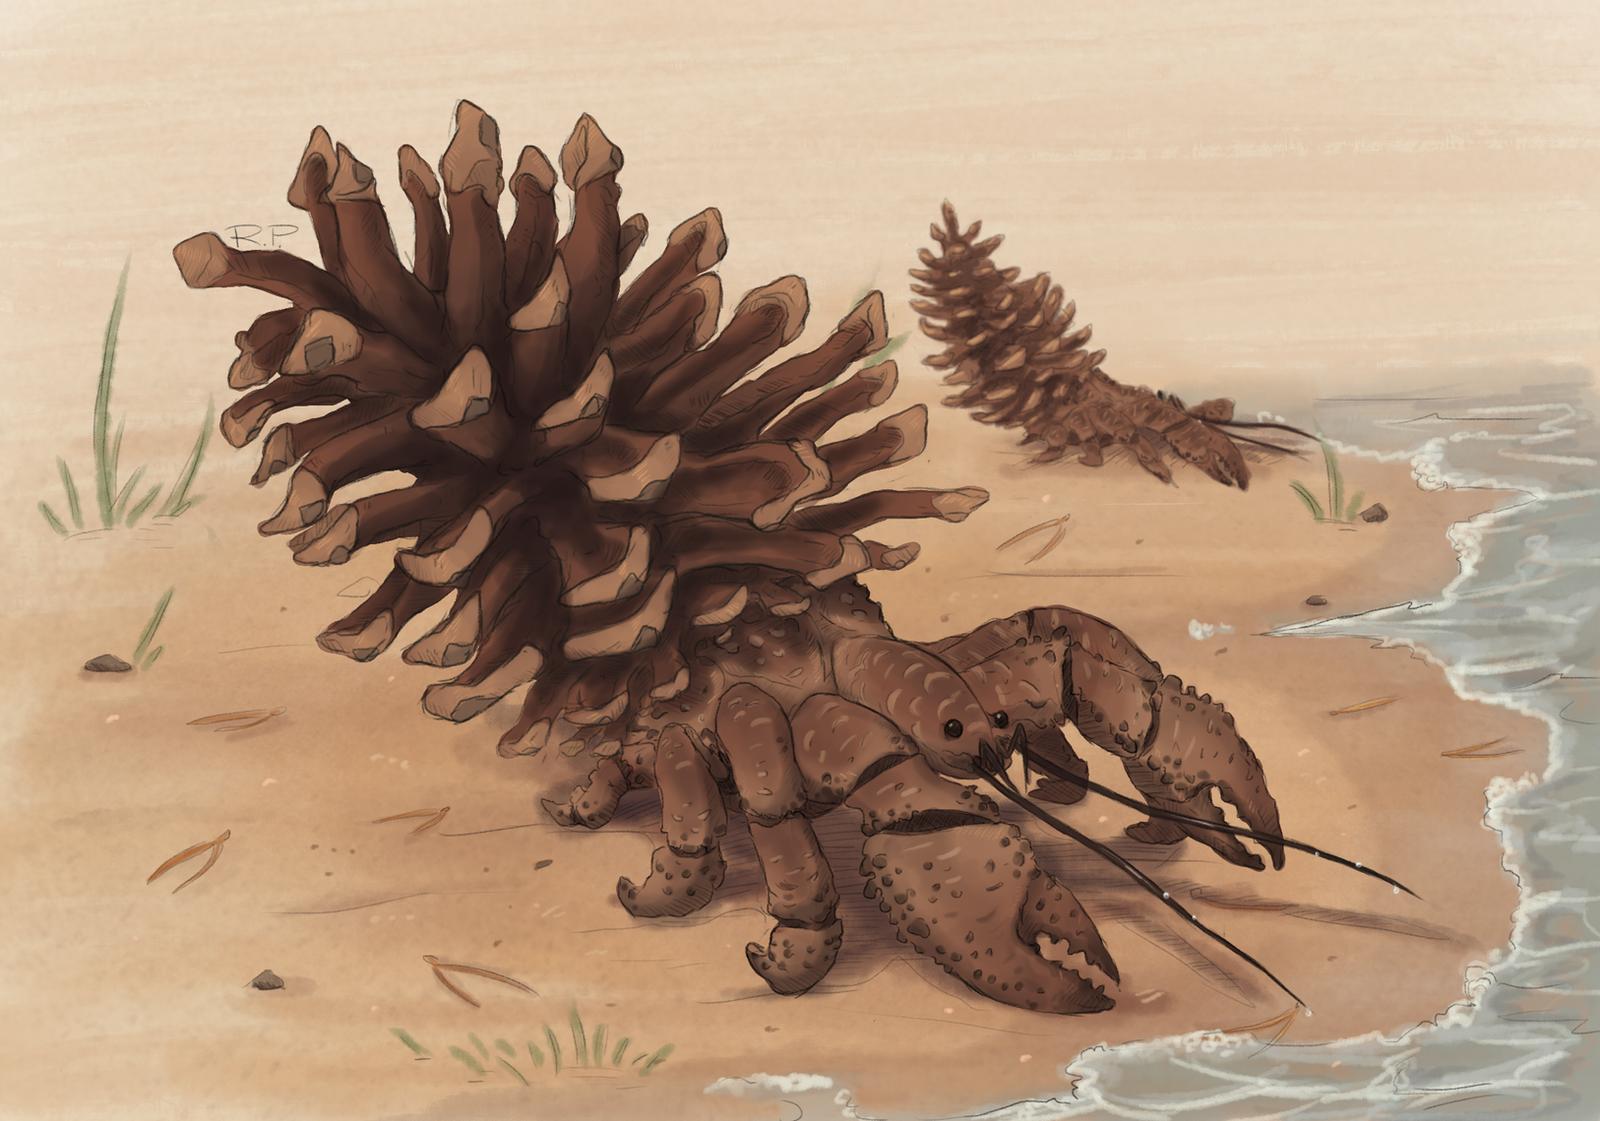 Pine crab by Jakiron